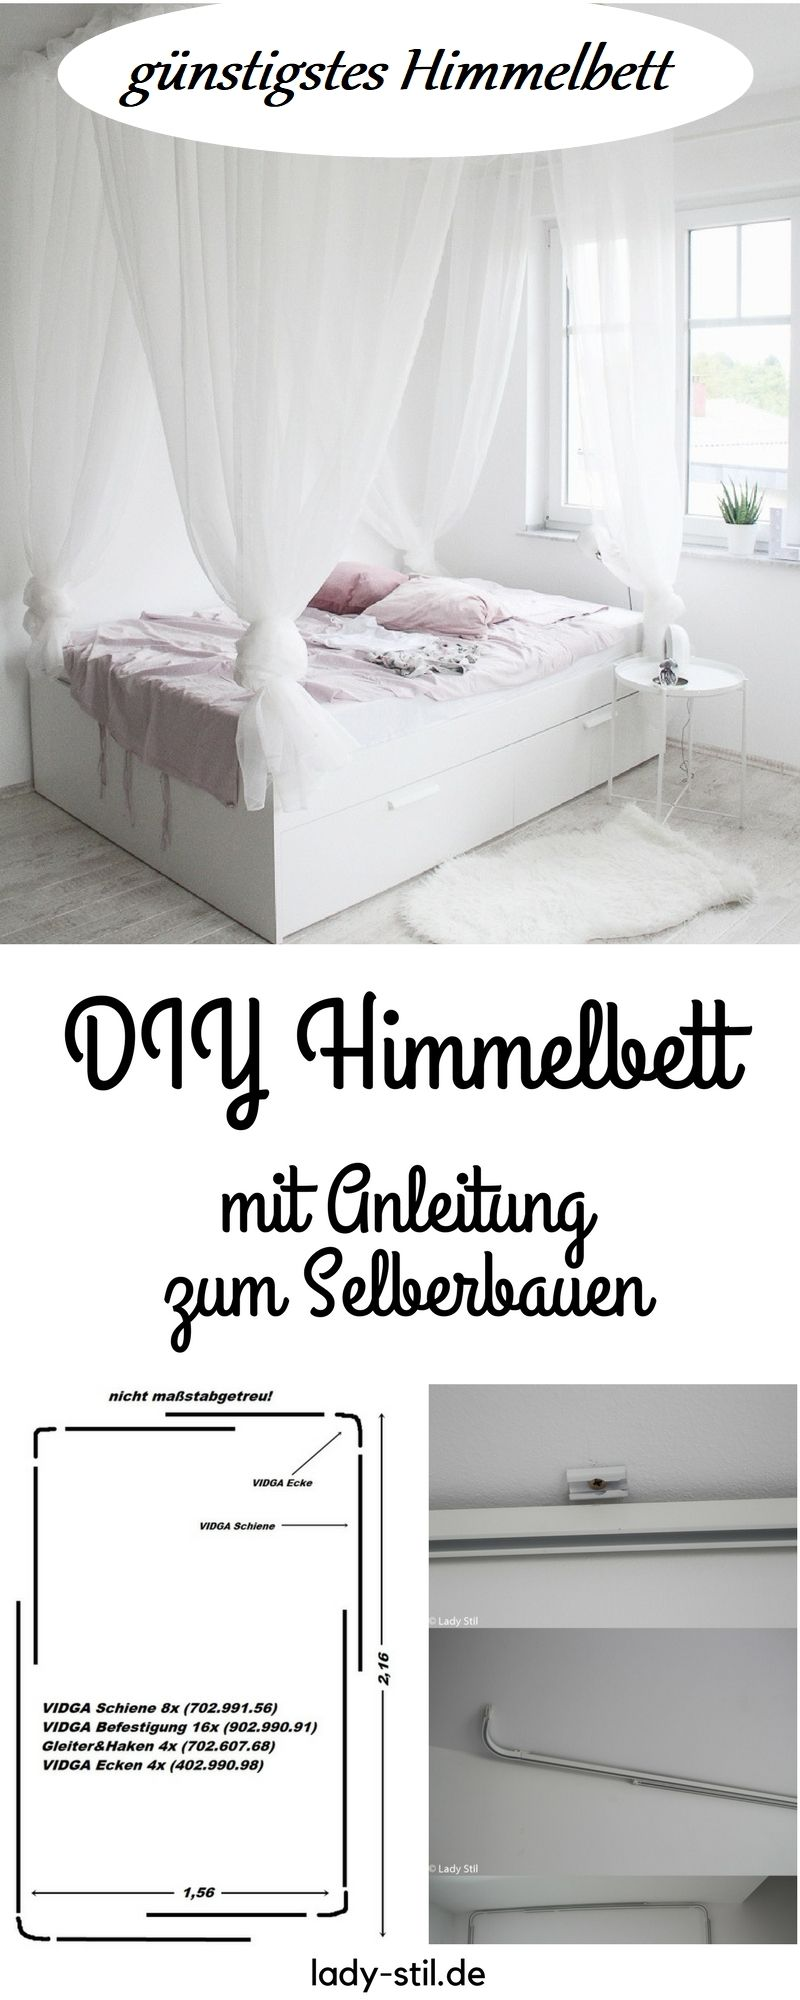 Zimmer im traditionellen stil jasmin gall galljasmin on pinterest